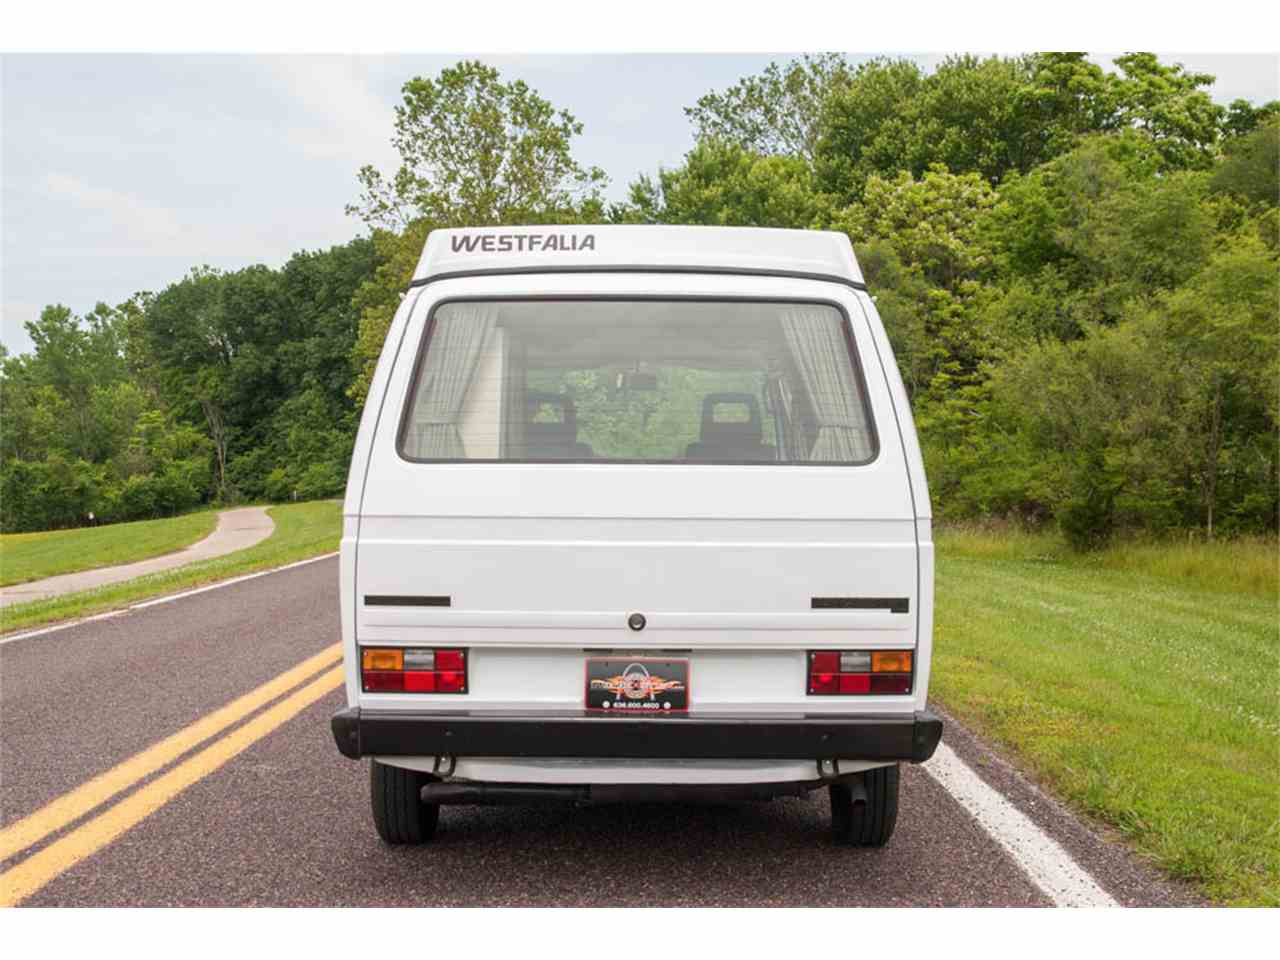 1983 Volkswagen Westfalia Vanagon For Sale Classiccars